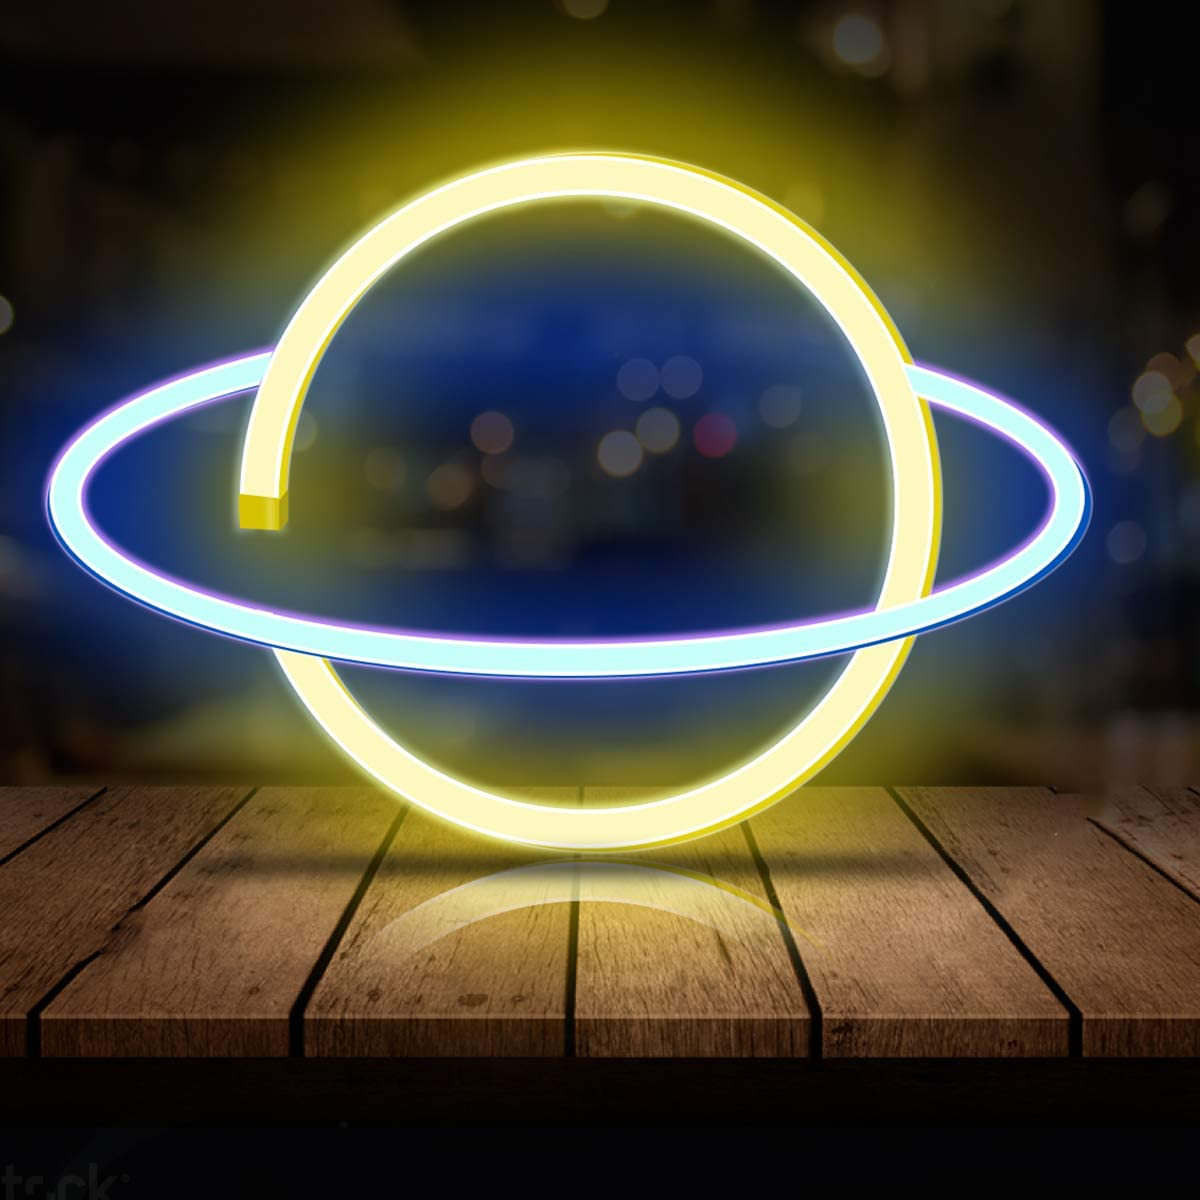 Neon Light LED Planet Neon Signs, Planet Shaped Neon Sign Wall Decor USB/Battery Night Light 50% OFF £8 with single use codes @ Amazon